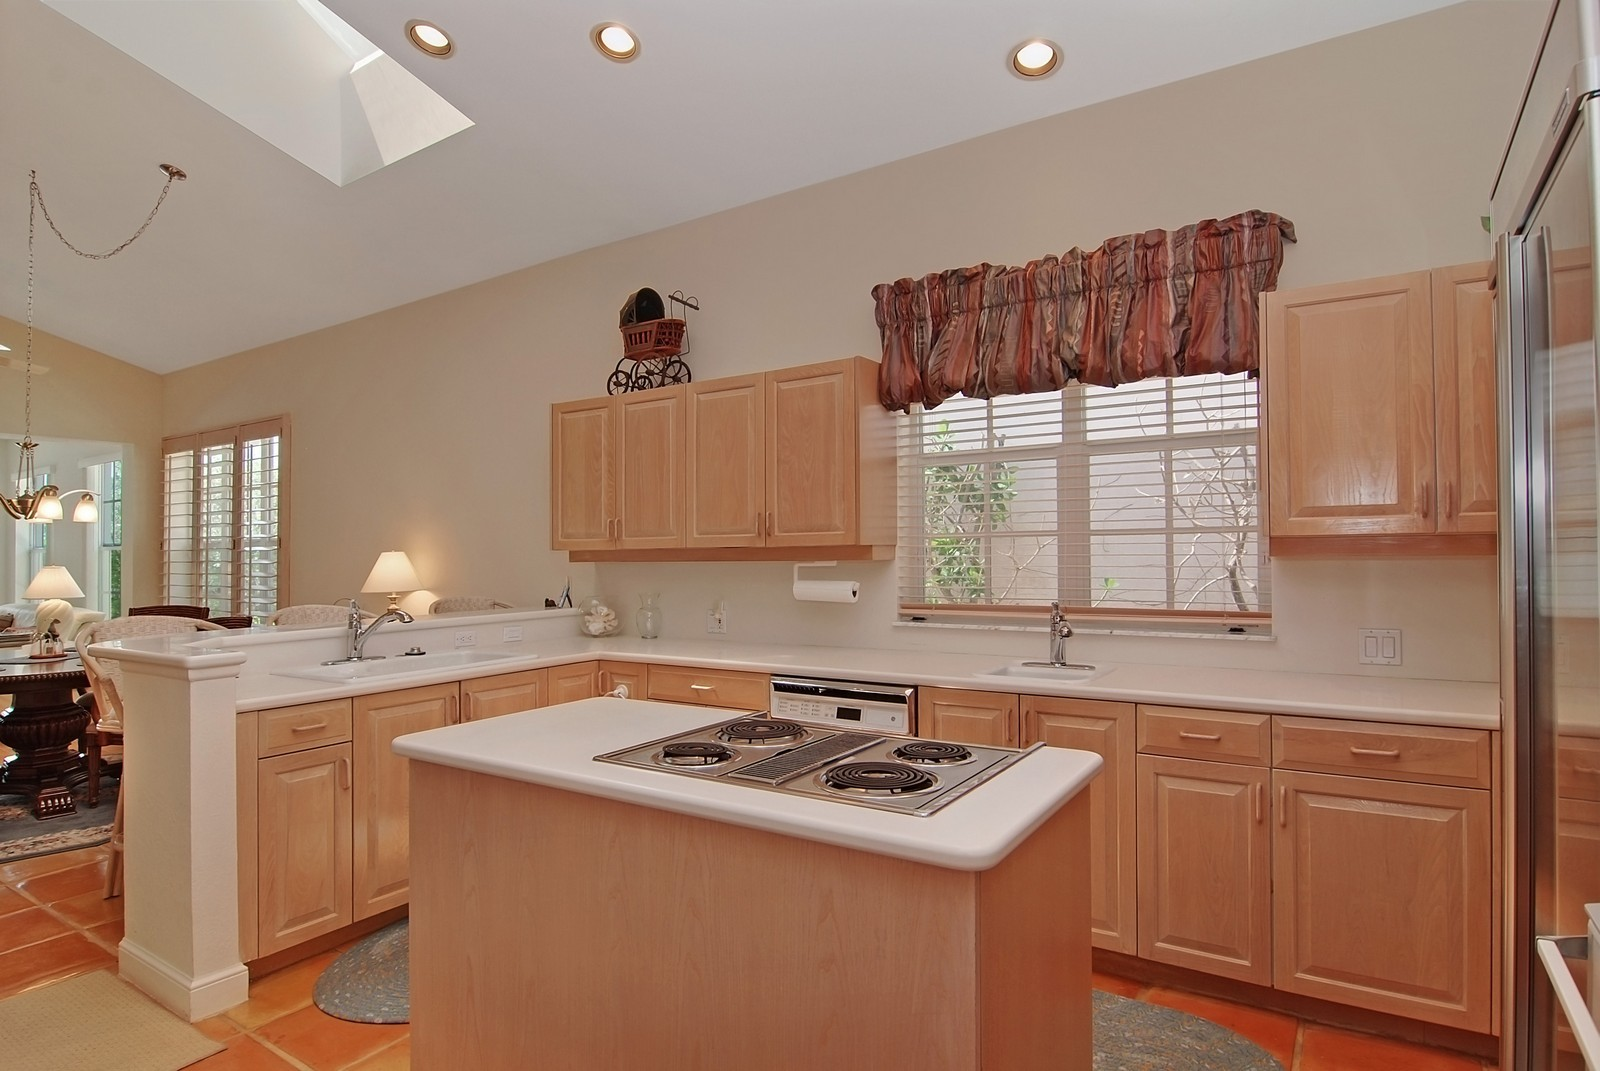 Real Estate Photography - 7000 SE Lakeview, Stuart, FL, 34996 - Kitchen